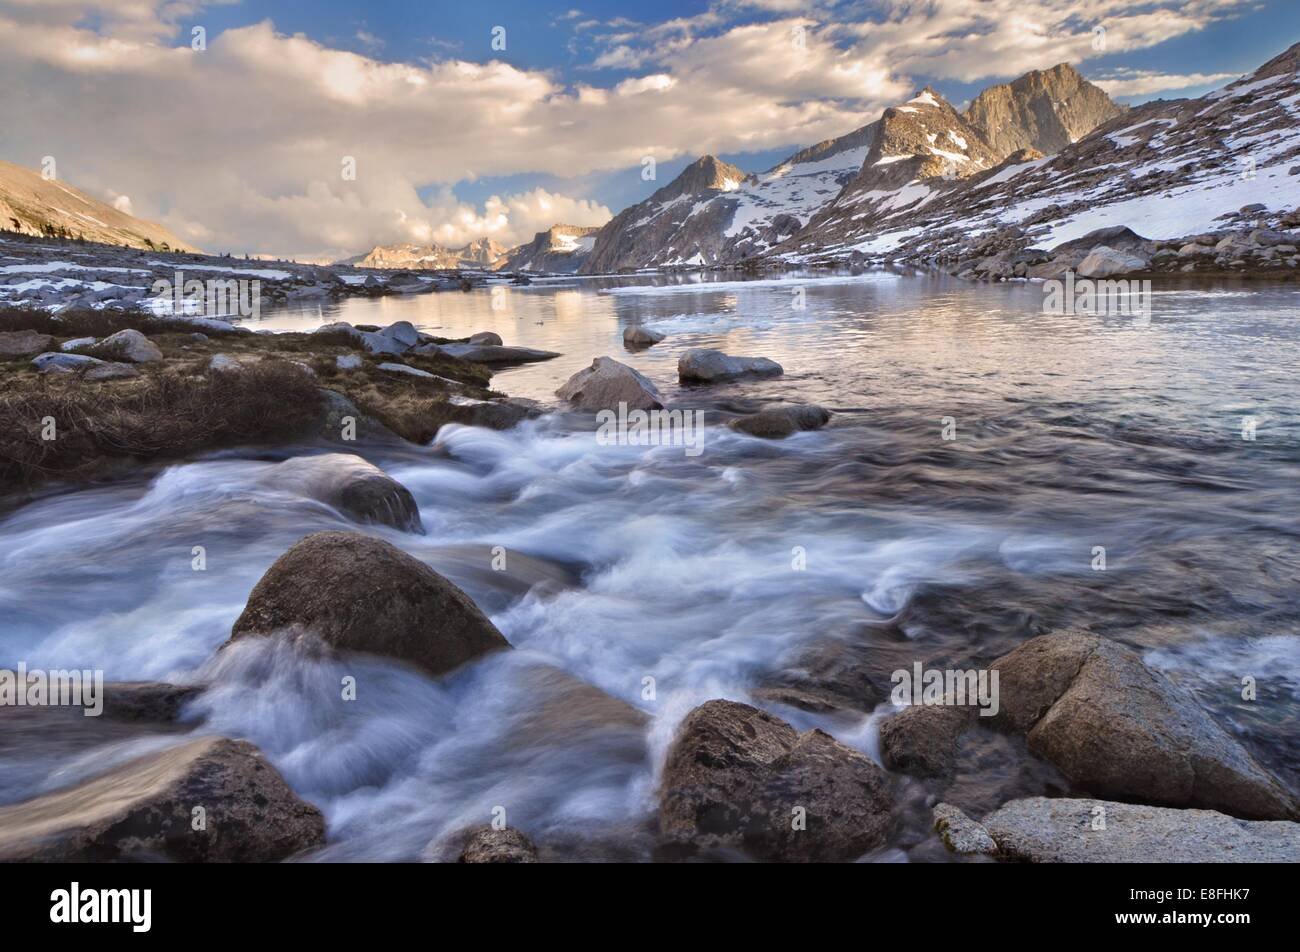 USA, California, Sequoia National Park, Nine Lake drainage and Eagle Scout Peak - Stock Image